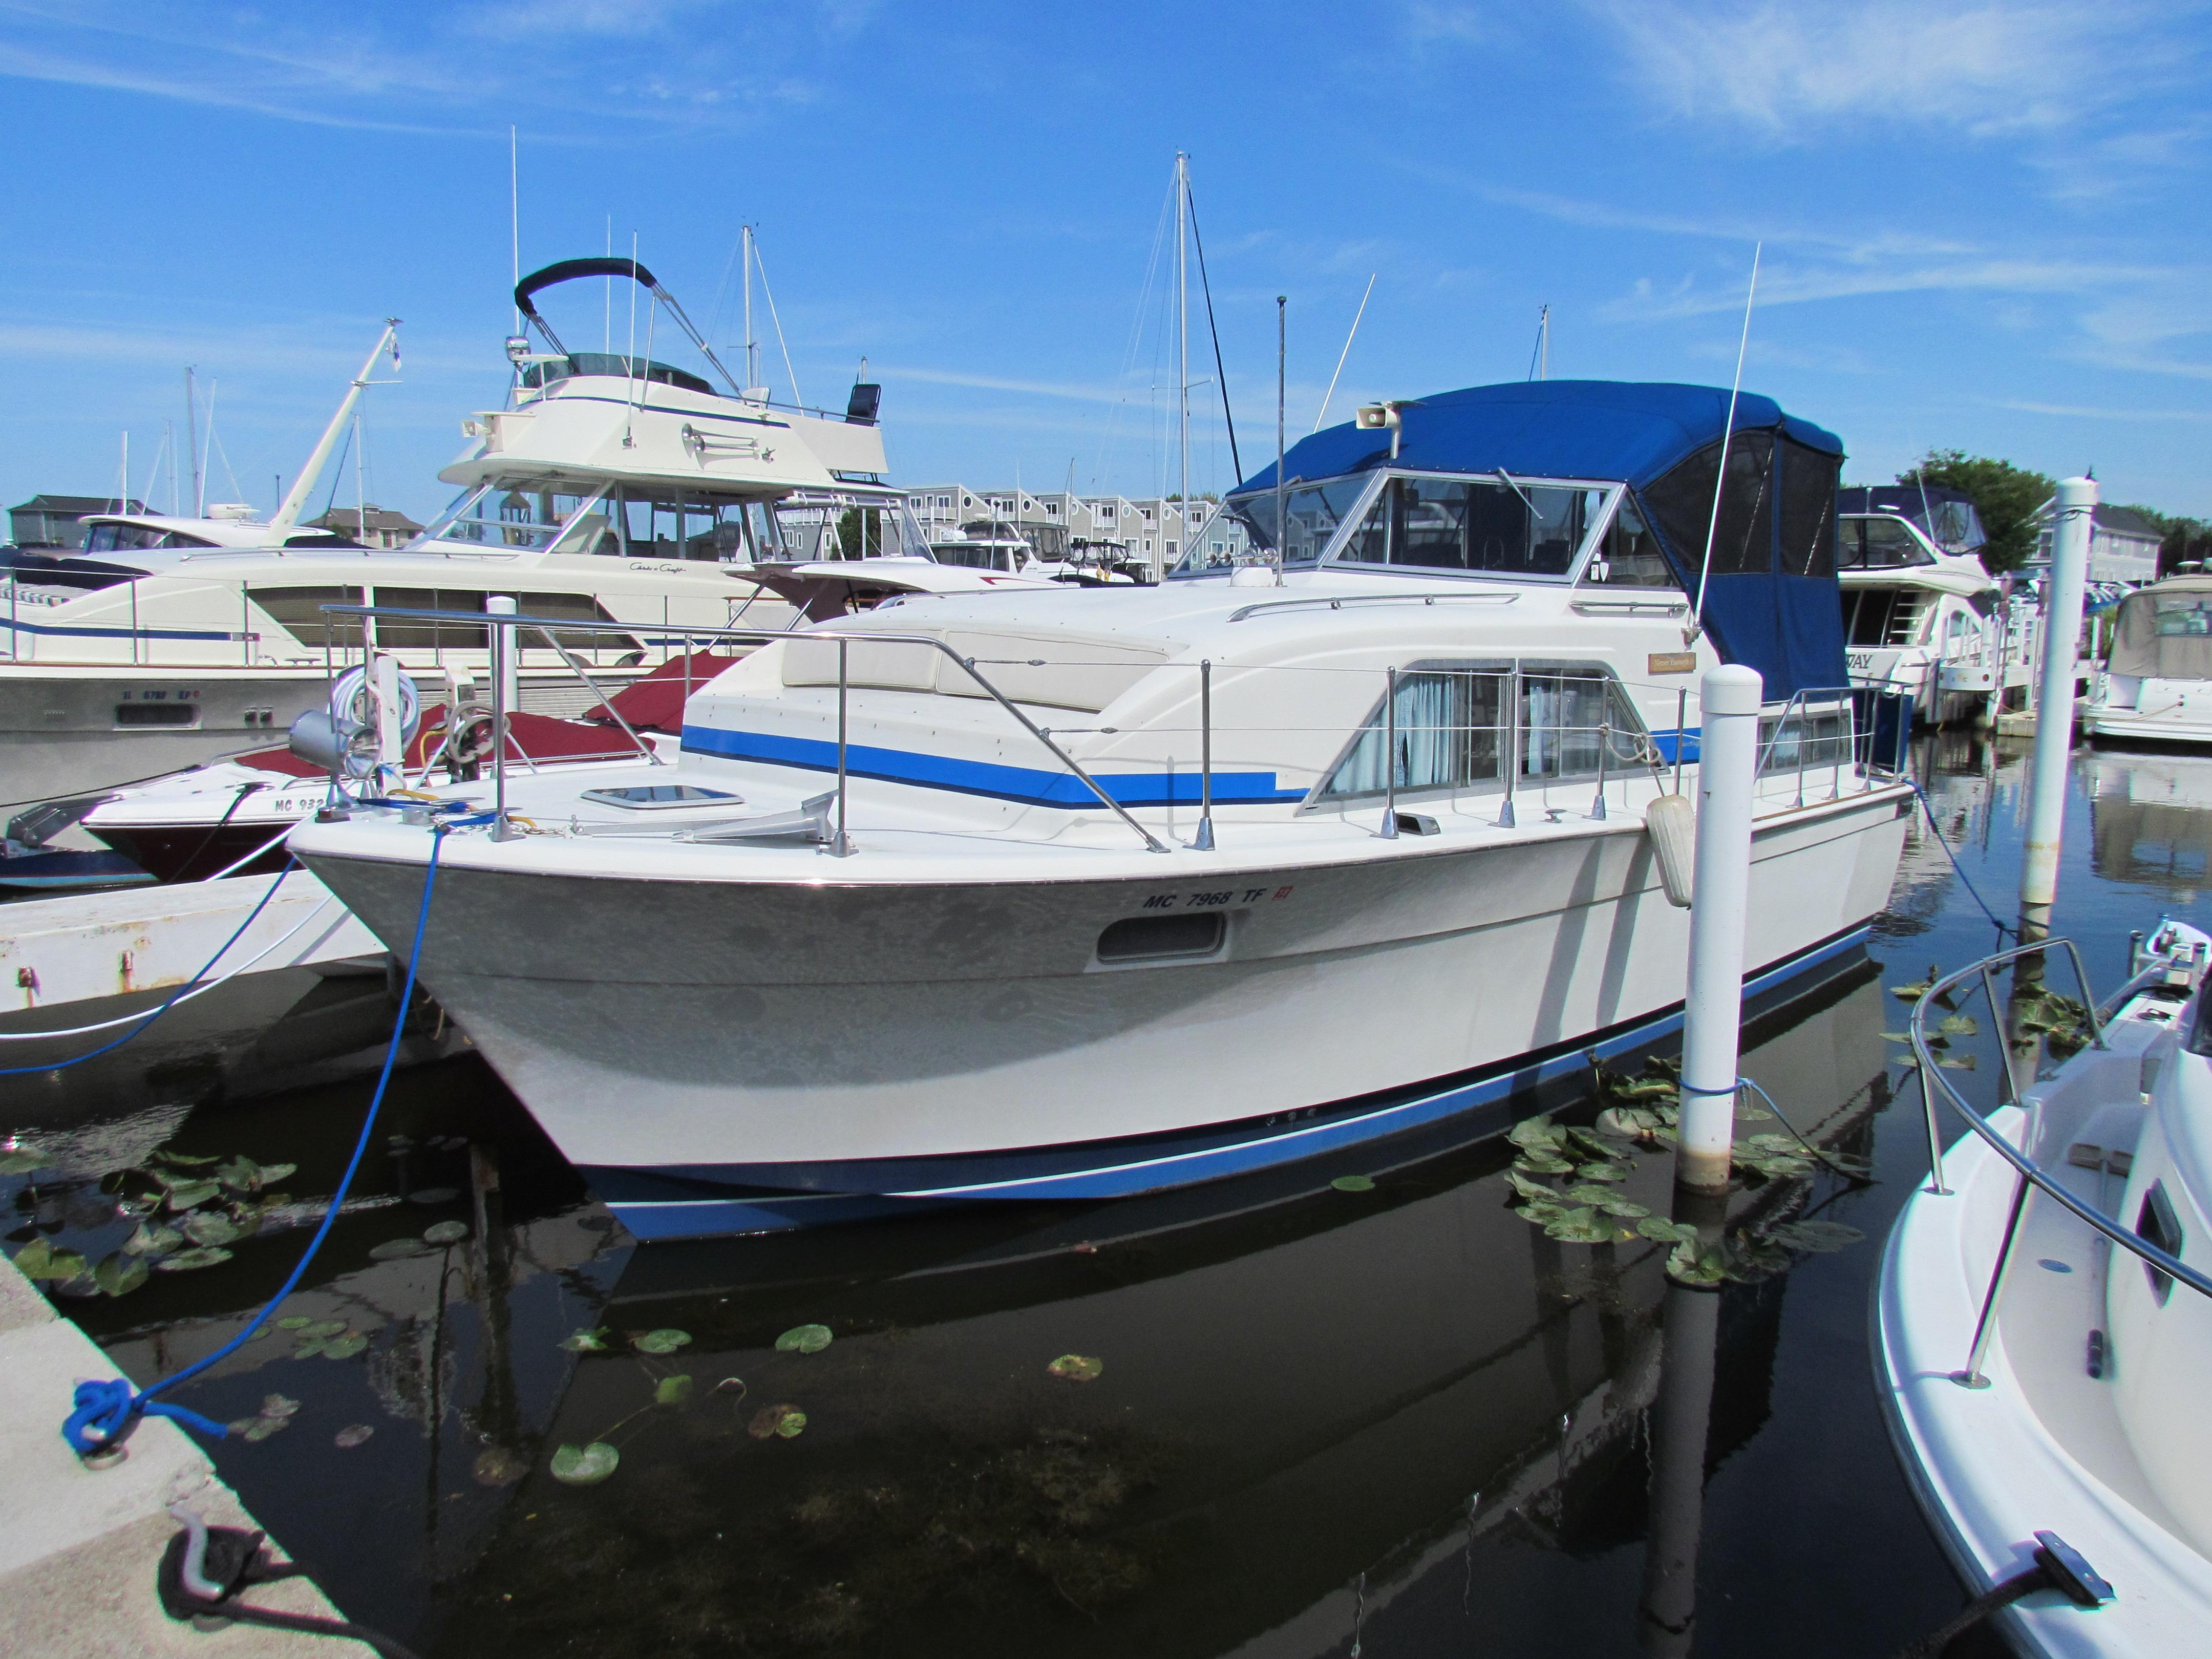 5383357_20150915114500834_1_XLARGE&w=4320&h=3240&t=1442346874000 chris craft 350 catalina boats for sale yachtworld Chris Craft Marine Engines at aneh.co